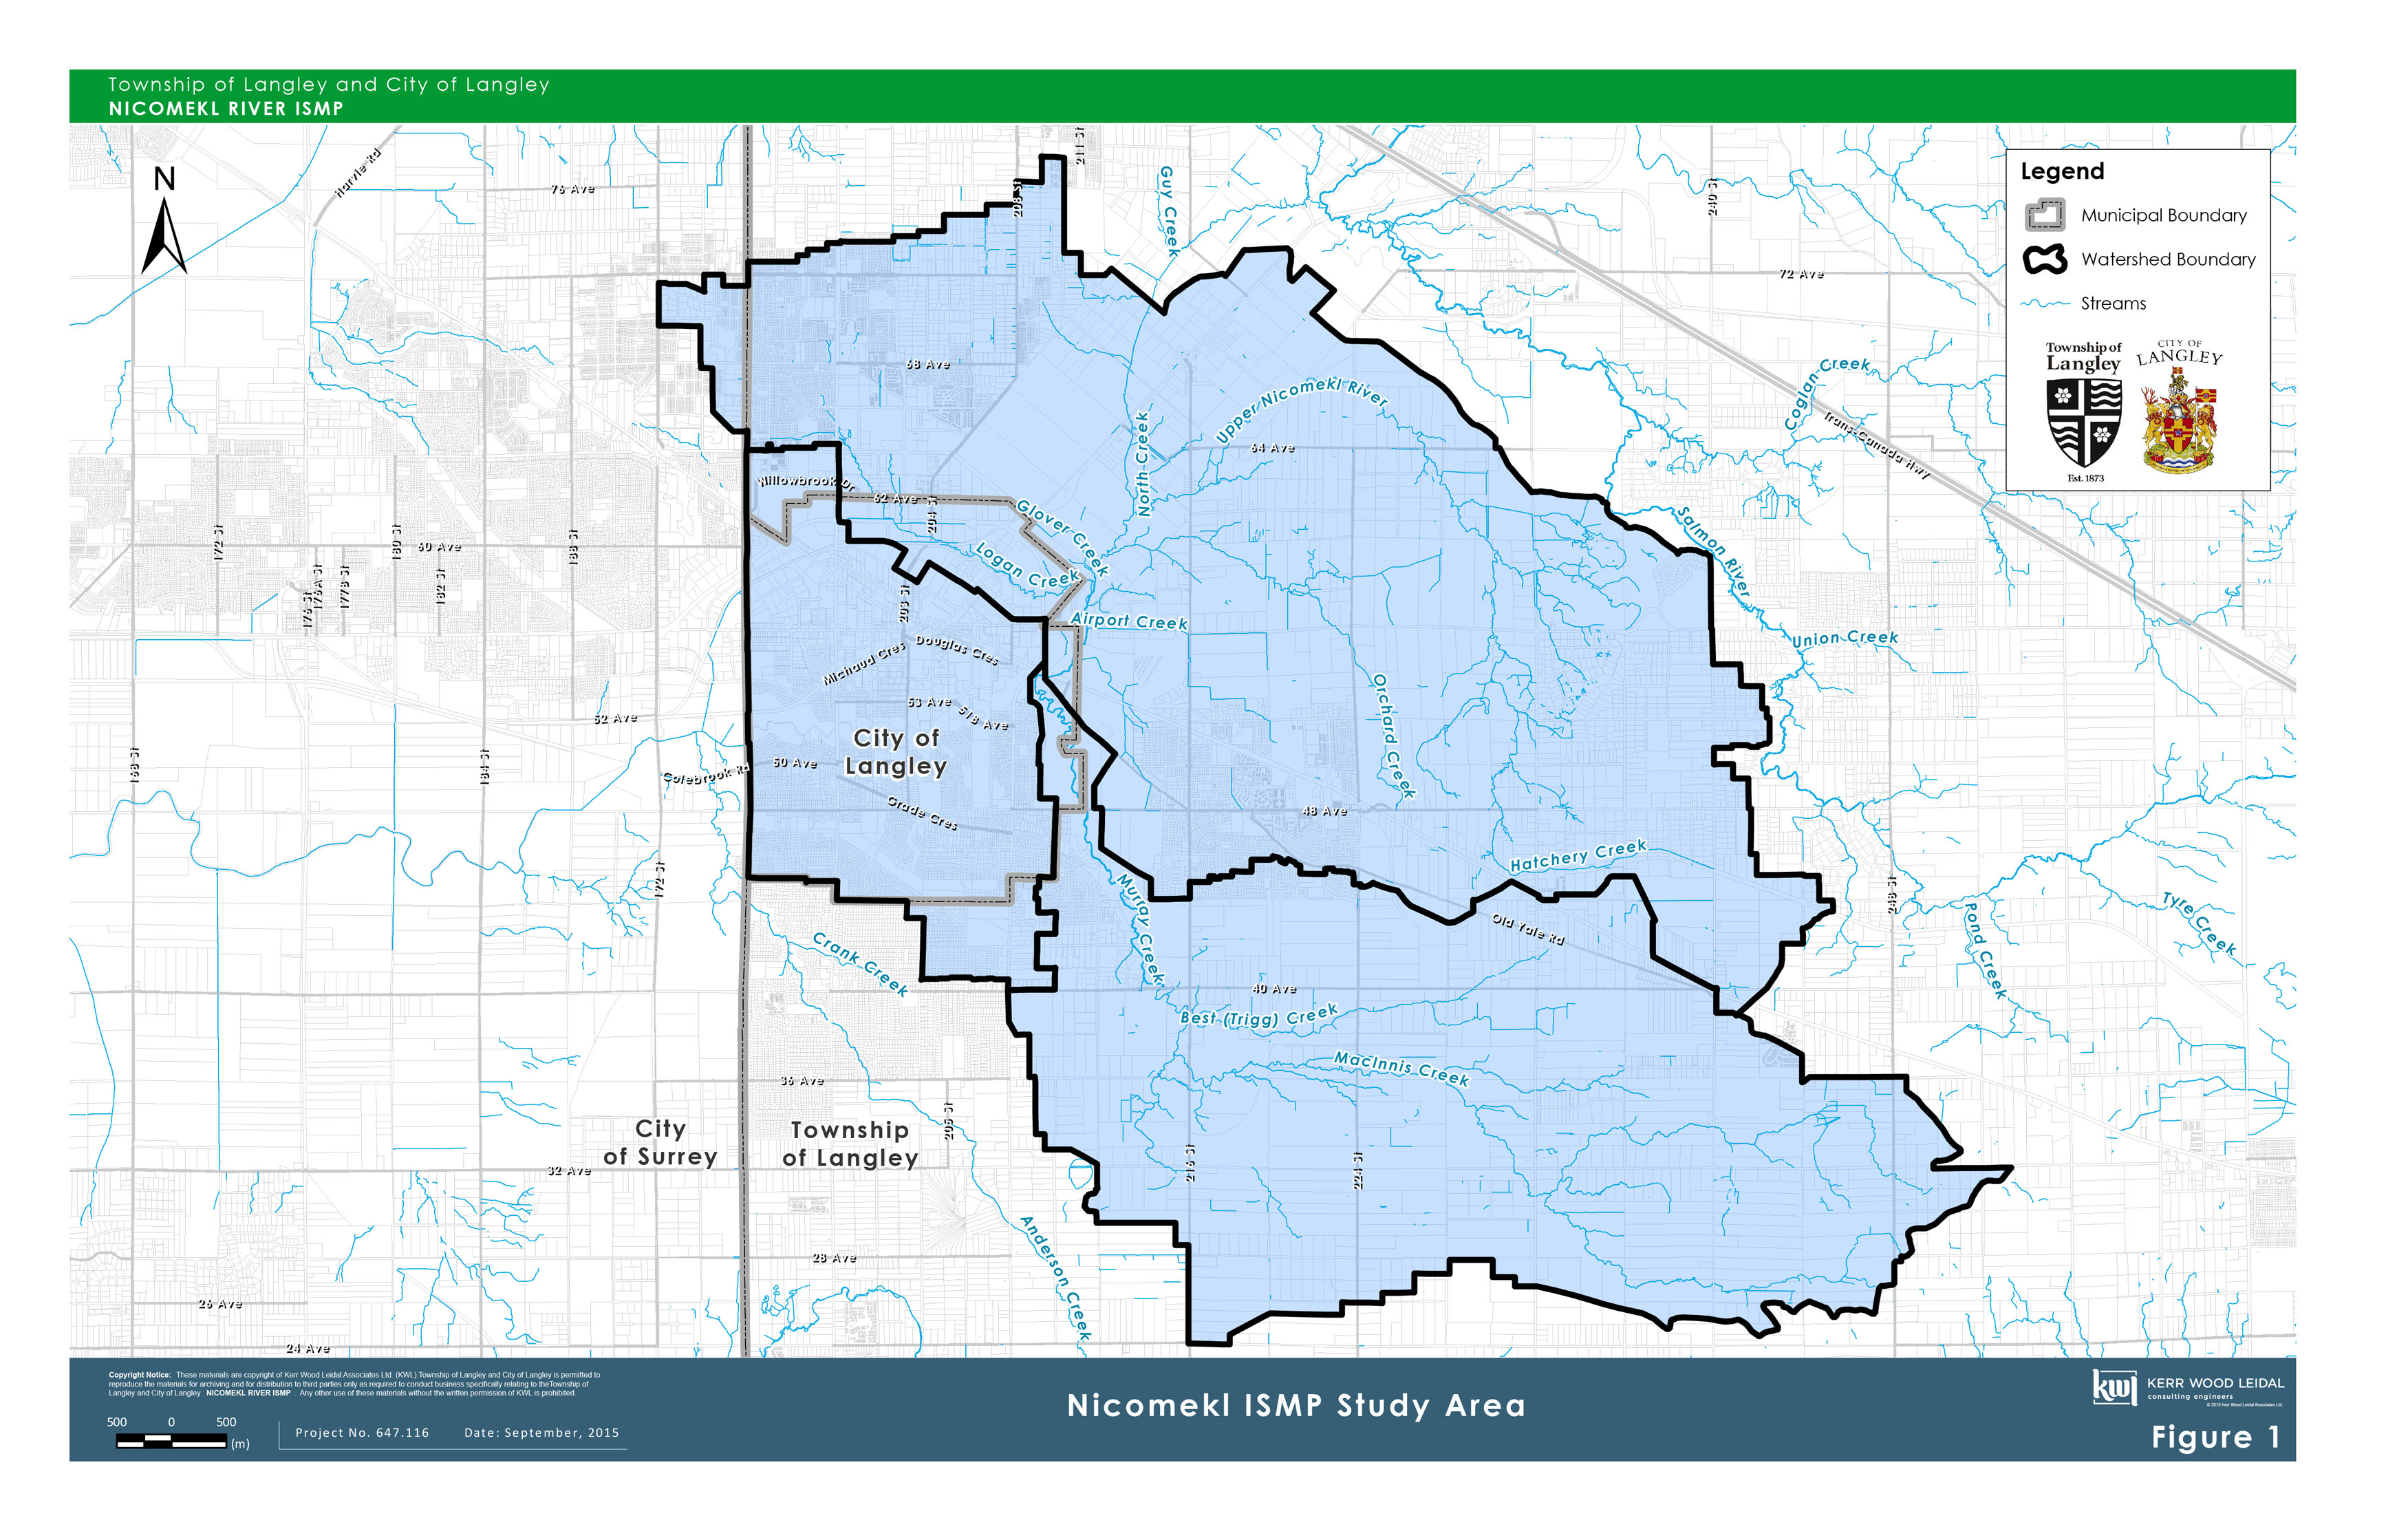 Nicomekl River Integrated Stormwater Management Plan Map